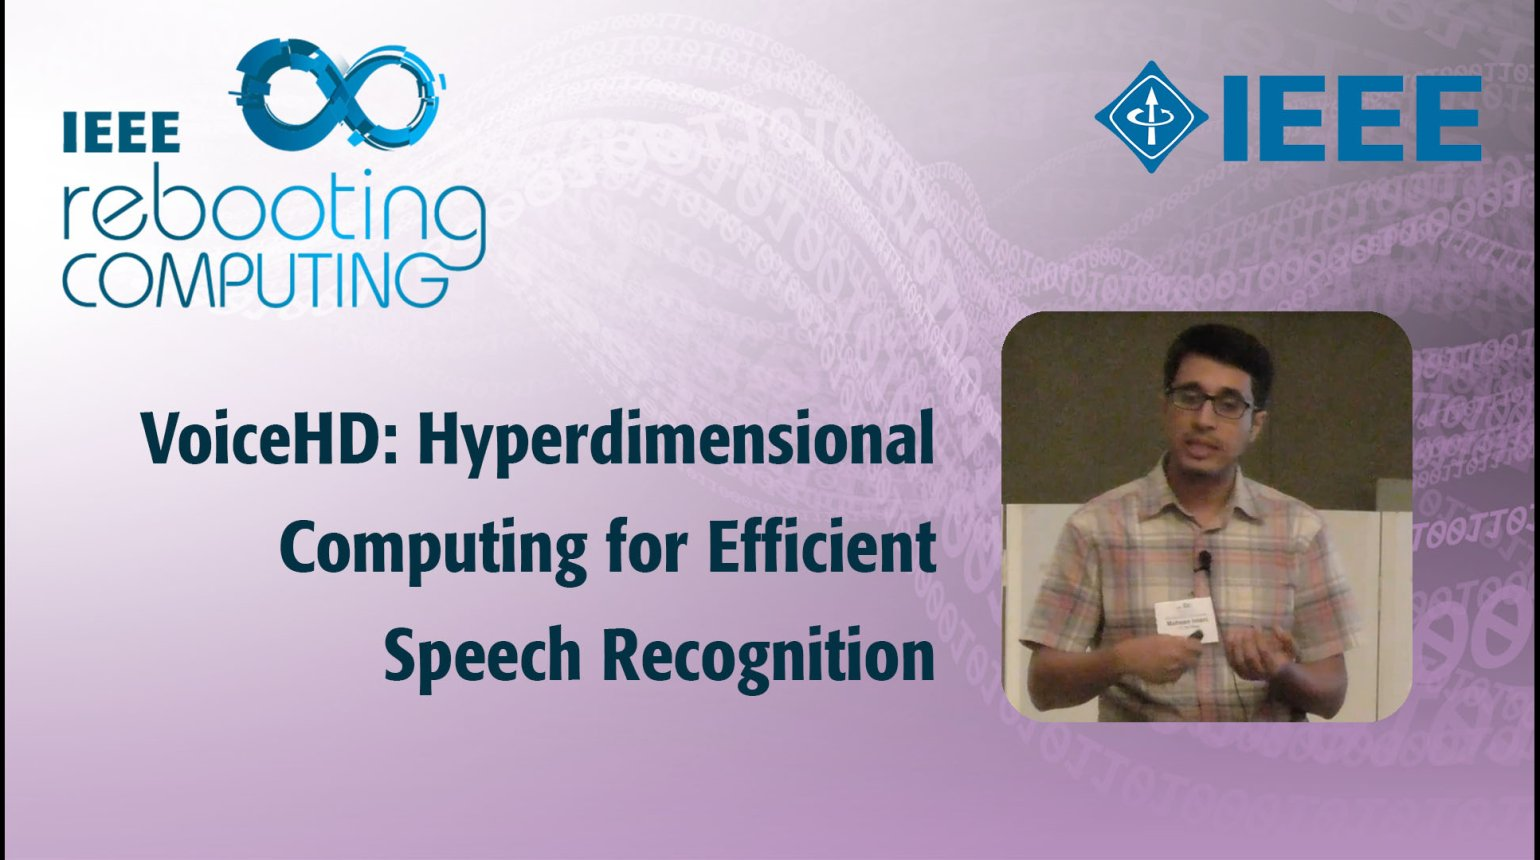 VoiceHD: Hyperdimensional Computing for Efficient Speech Recognition: IEEE Rebooting Computing 2017